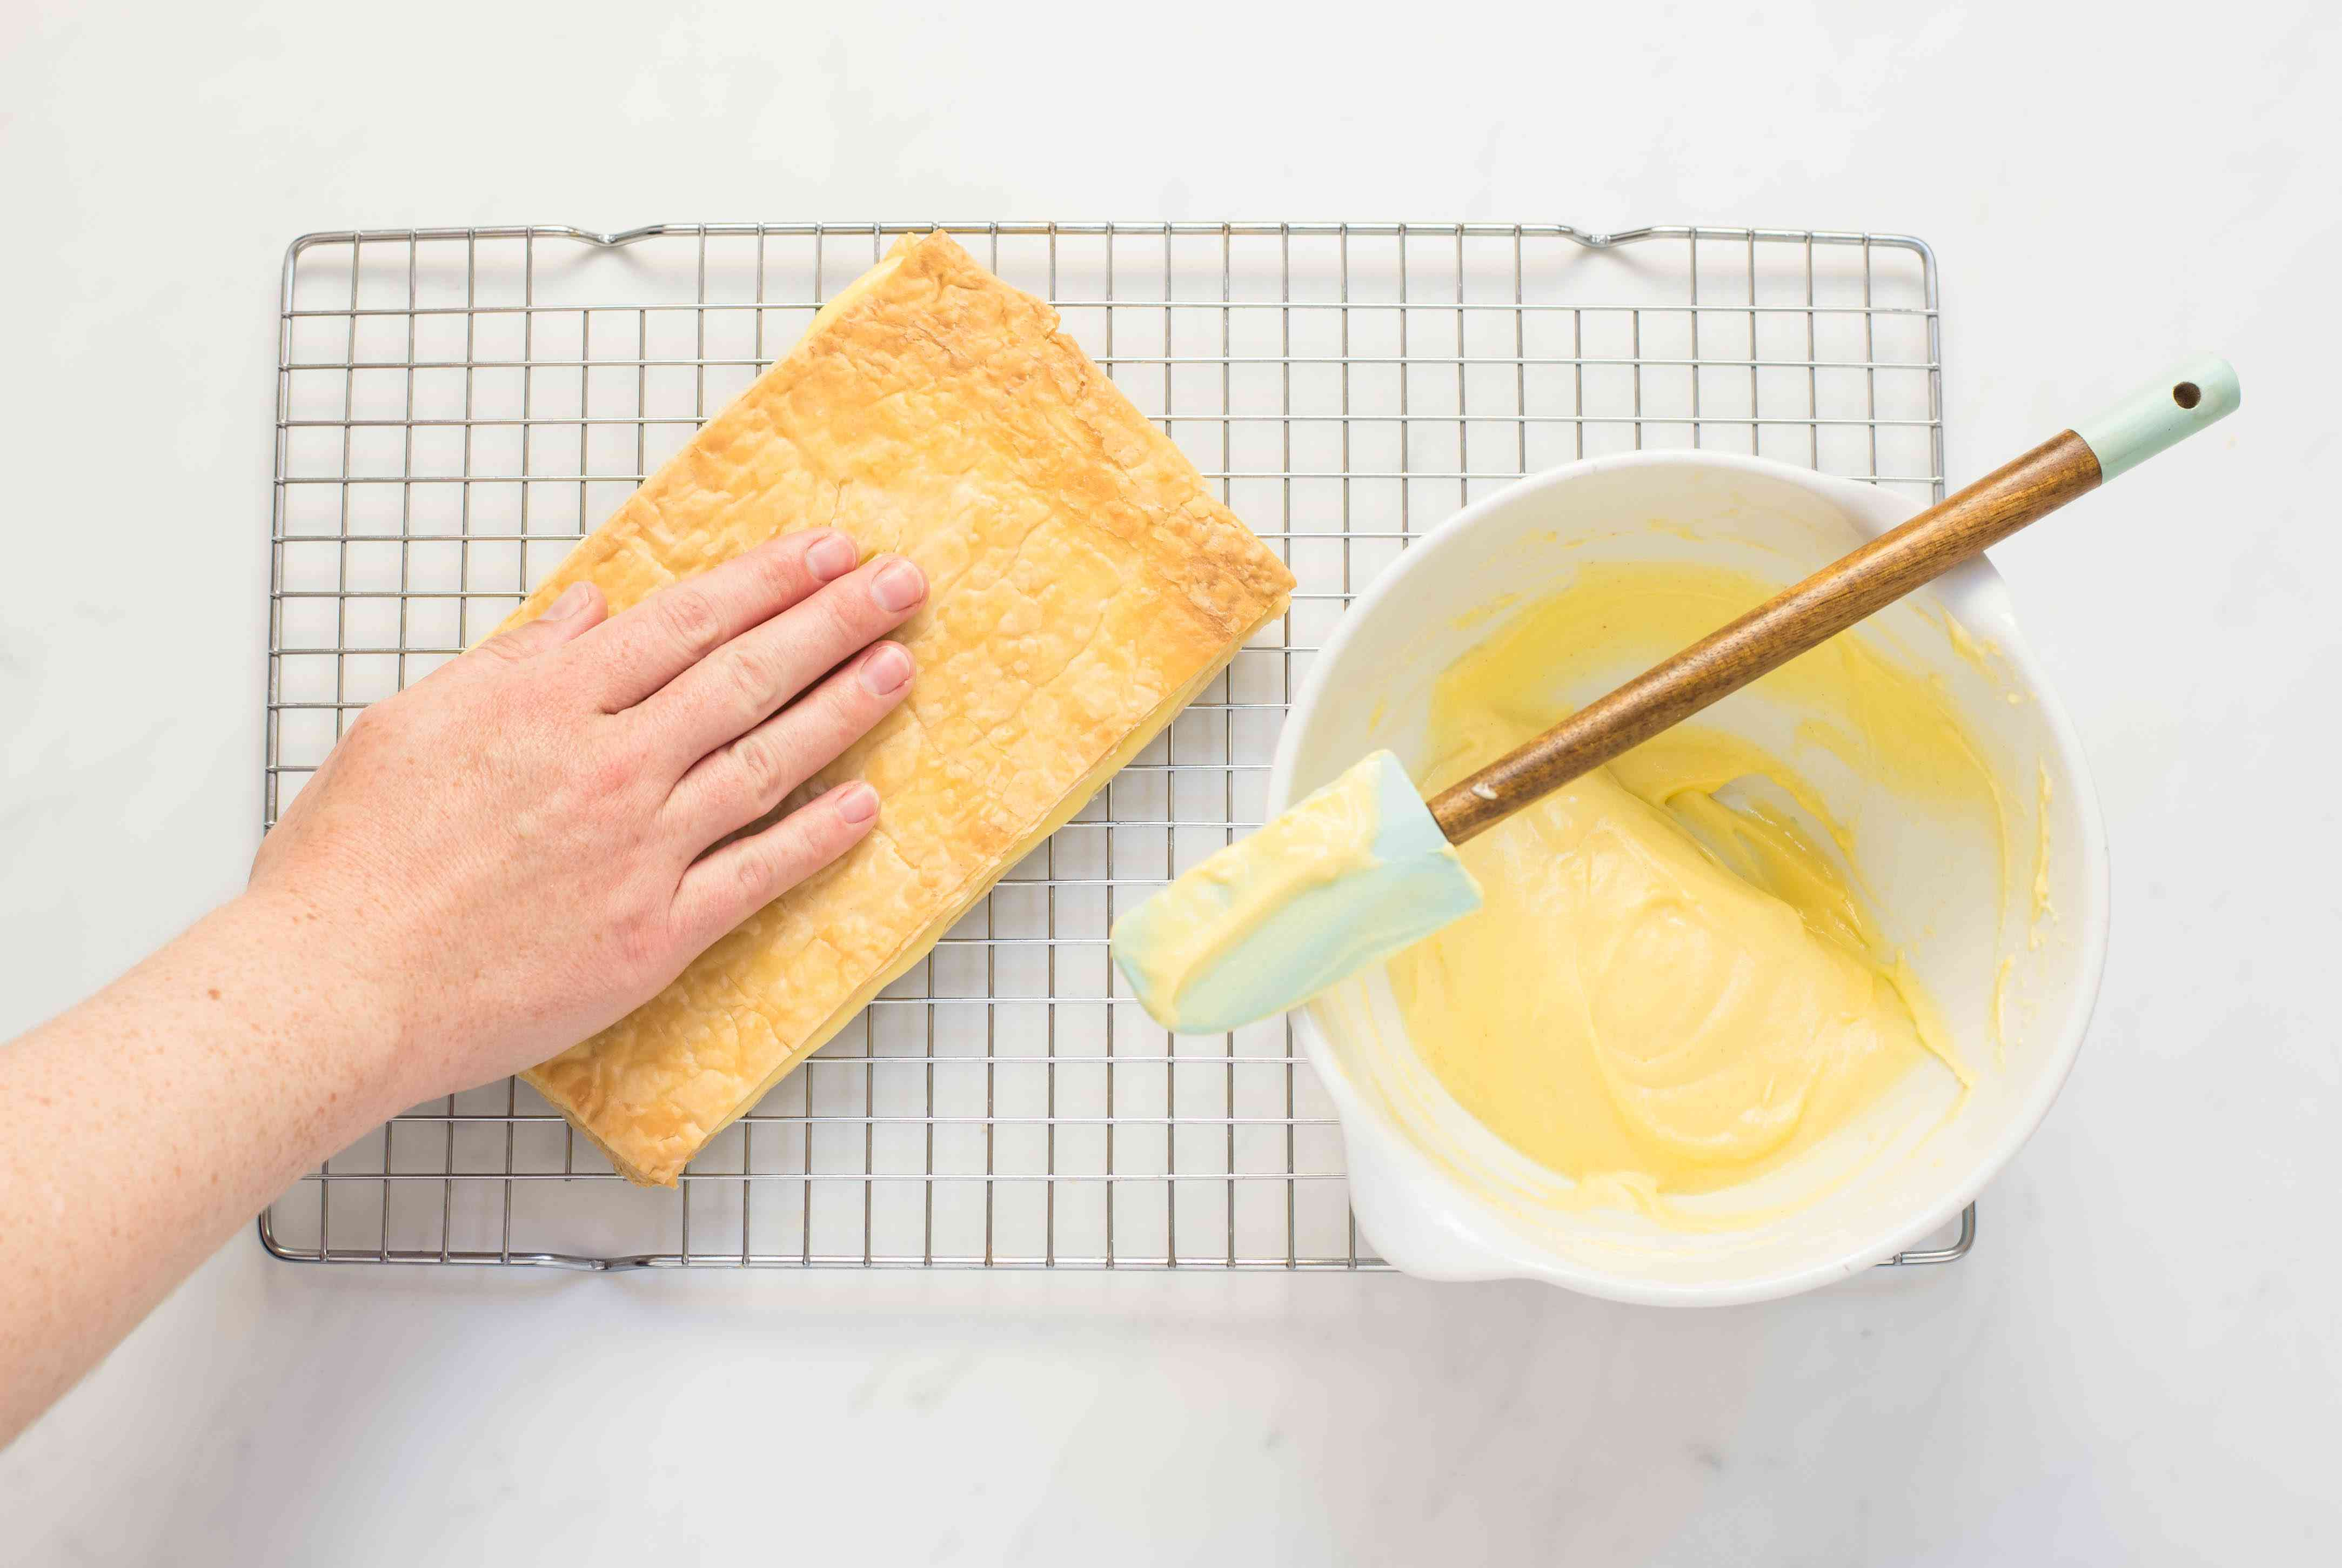 Pastry cream is topped puff pastry